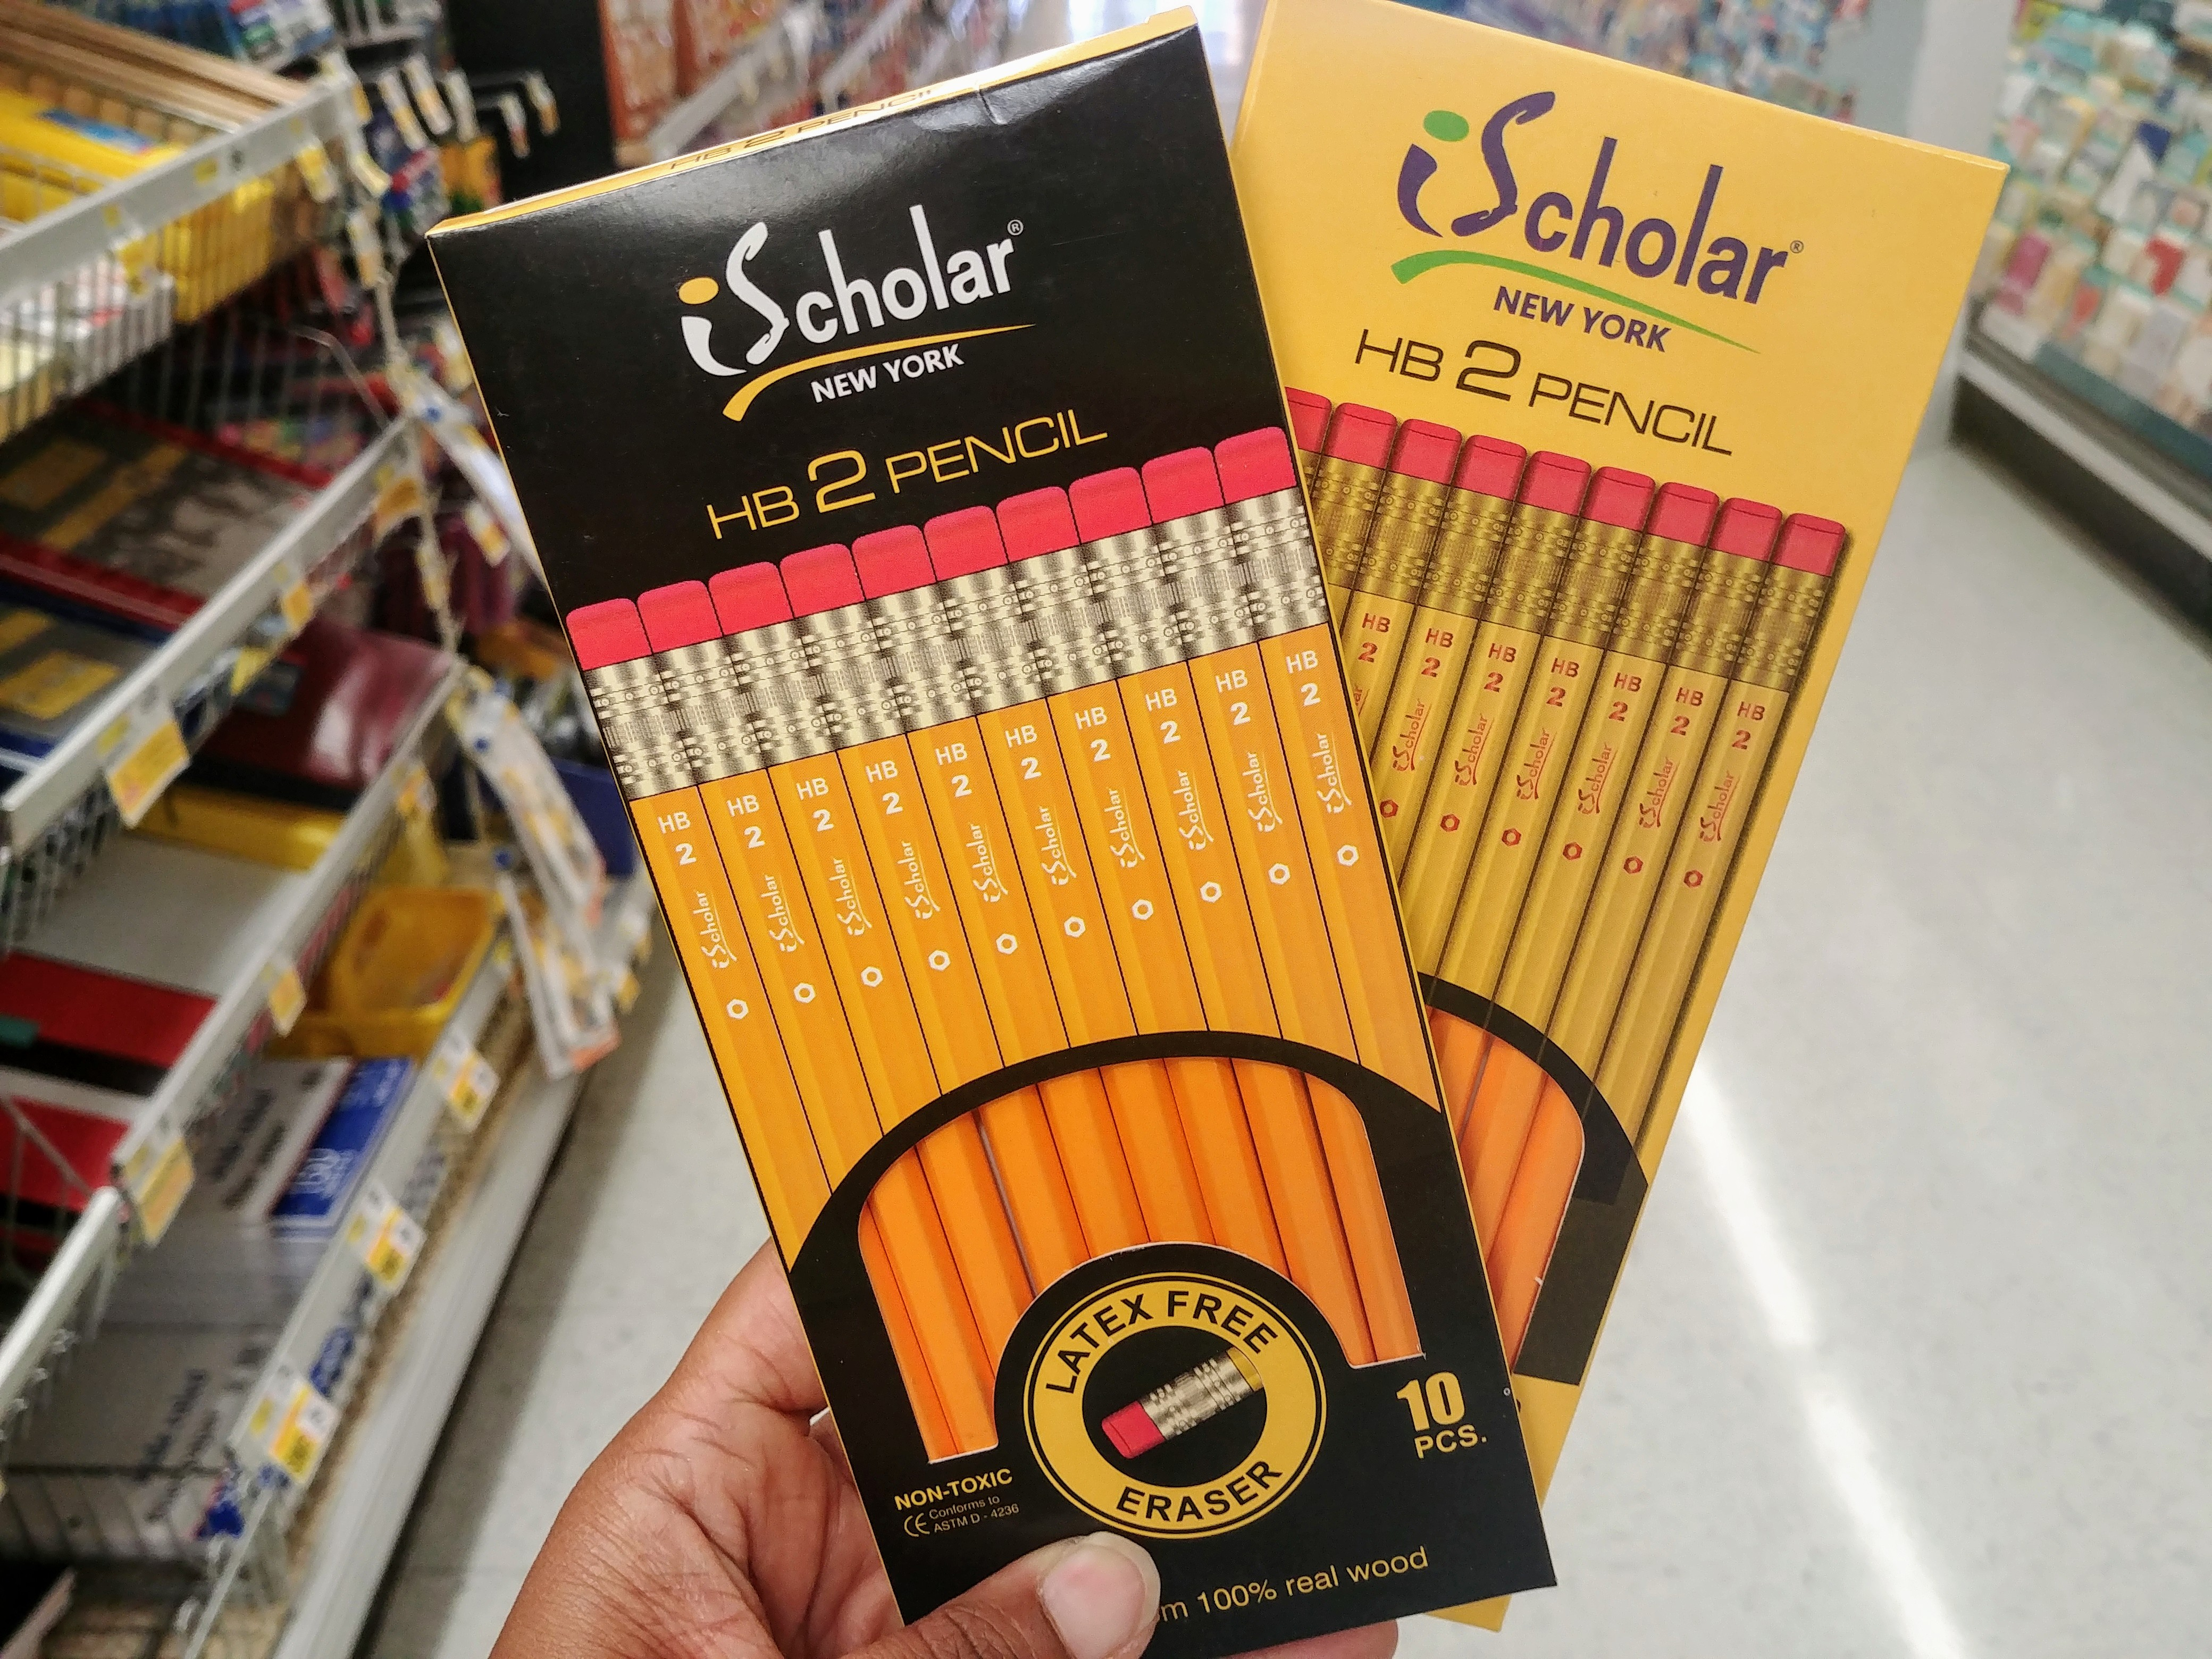 iScholar Pencils at Shoprite